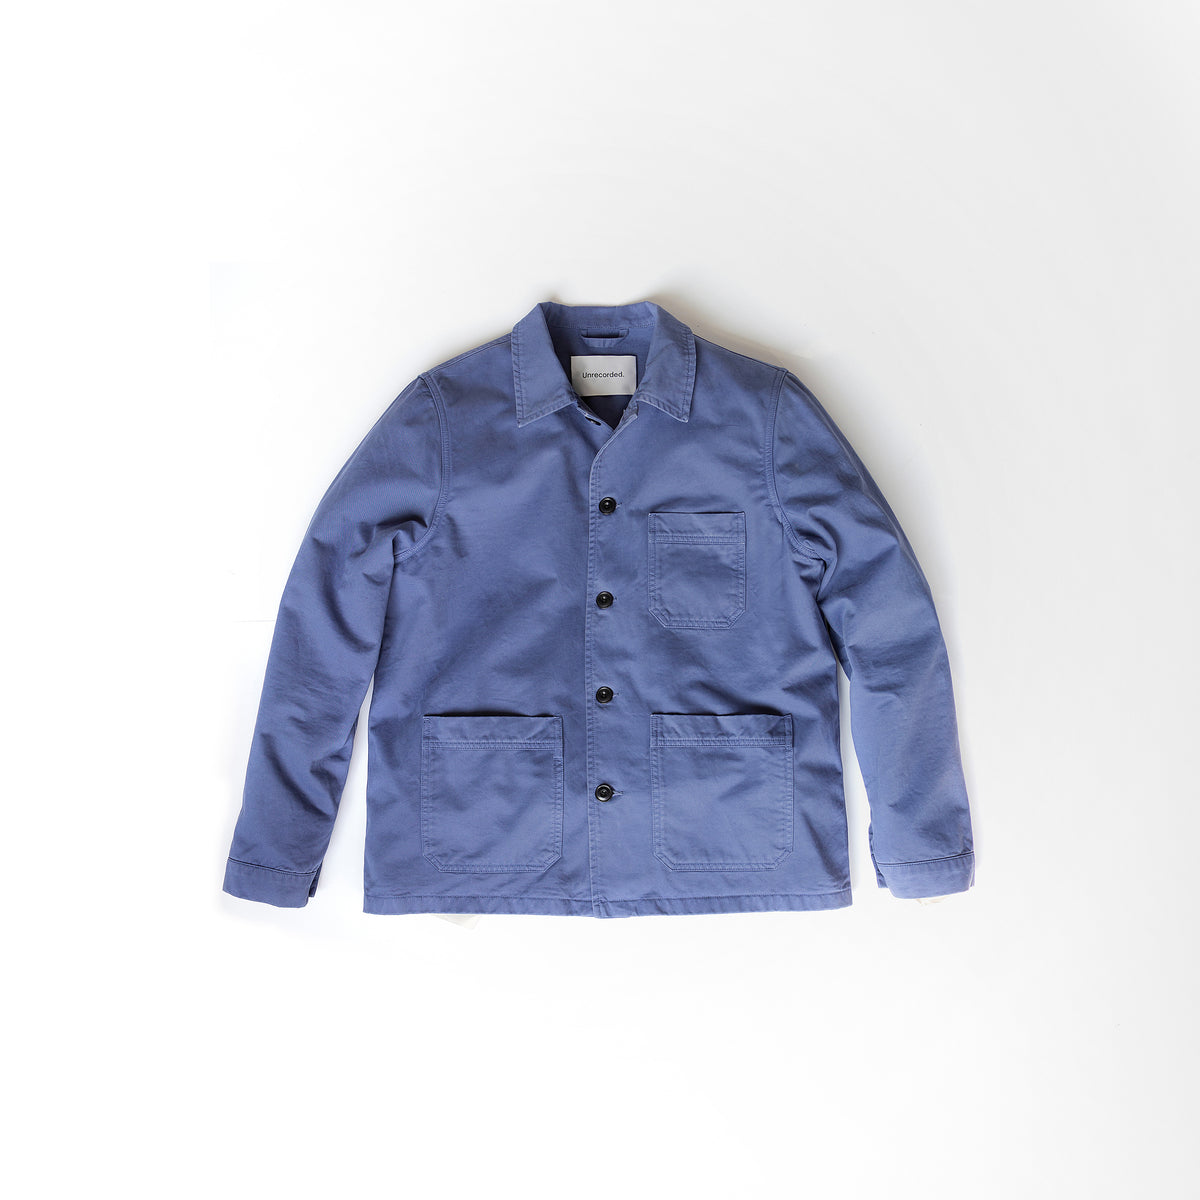 Worker Jacket in Dusty Blue made from organic cotton - Alternate